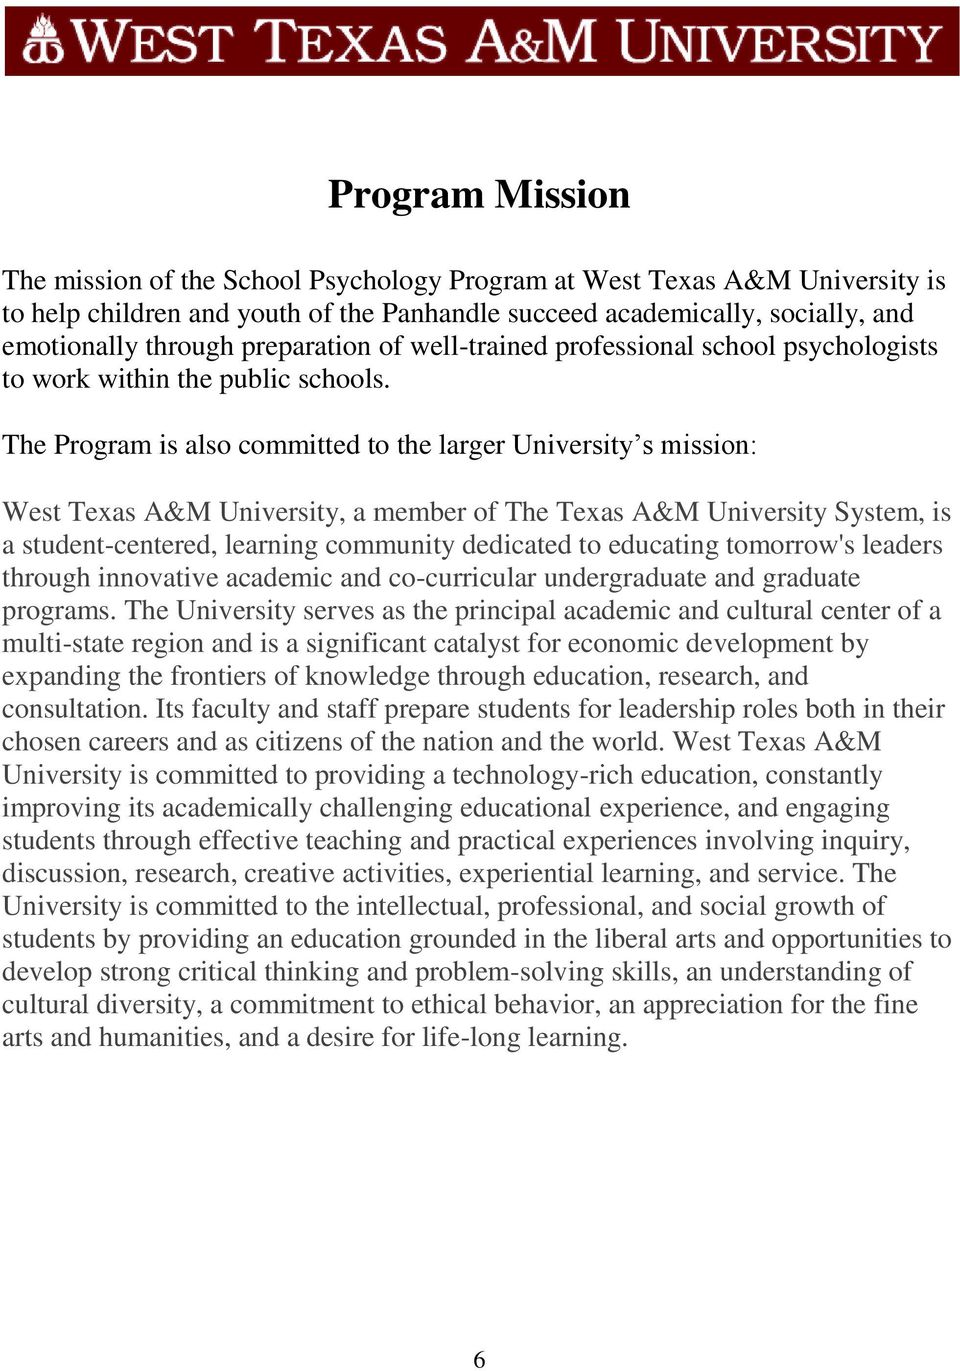 The Program is also committed to the larger University s mission: West Texas A&M University, a member of The Texas A&M University System, is a student-centered, learning community dedicated to